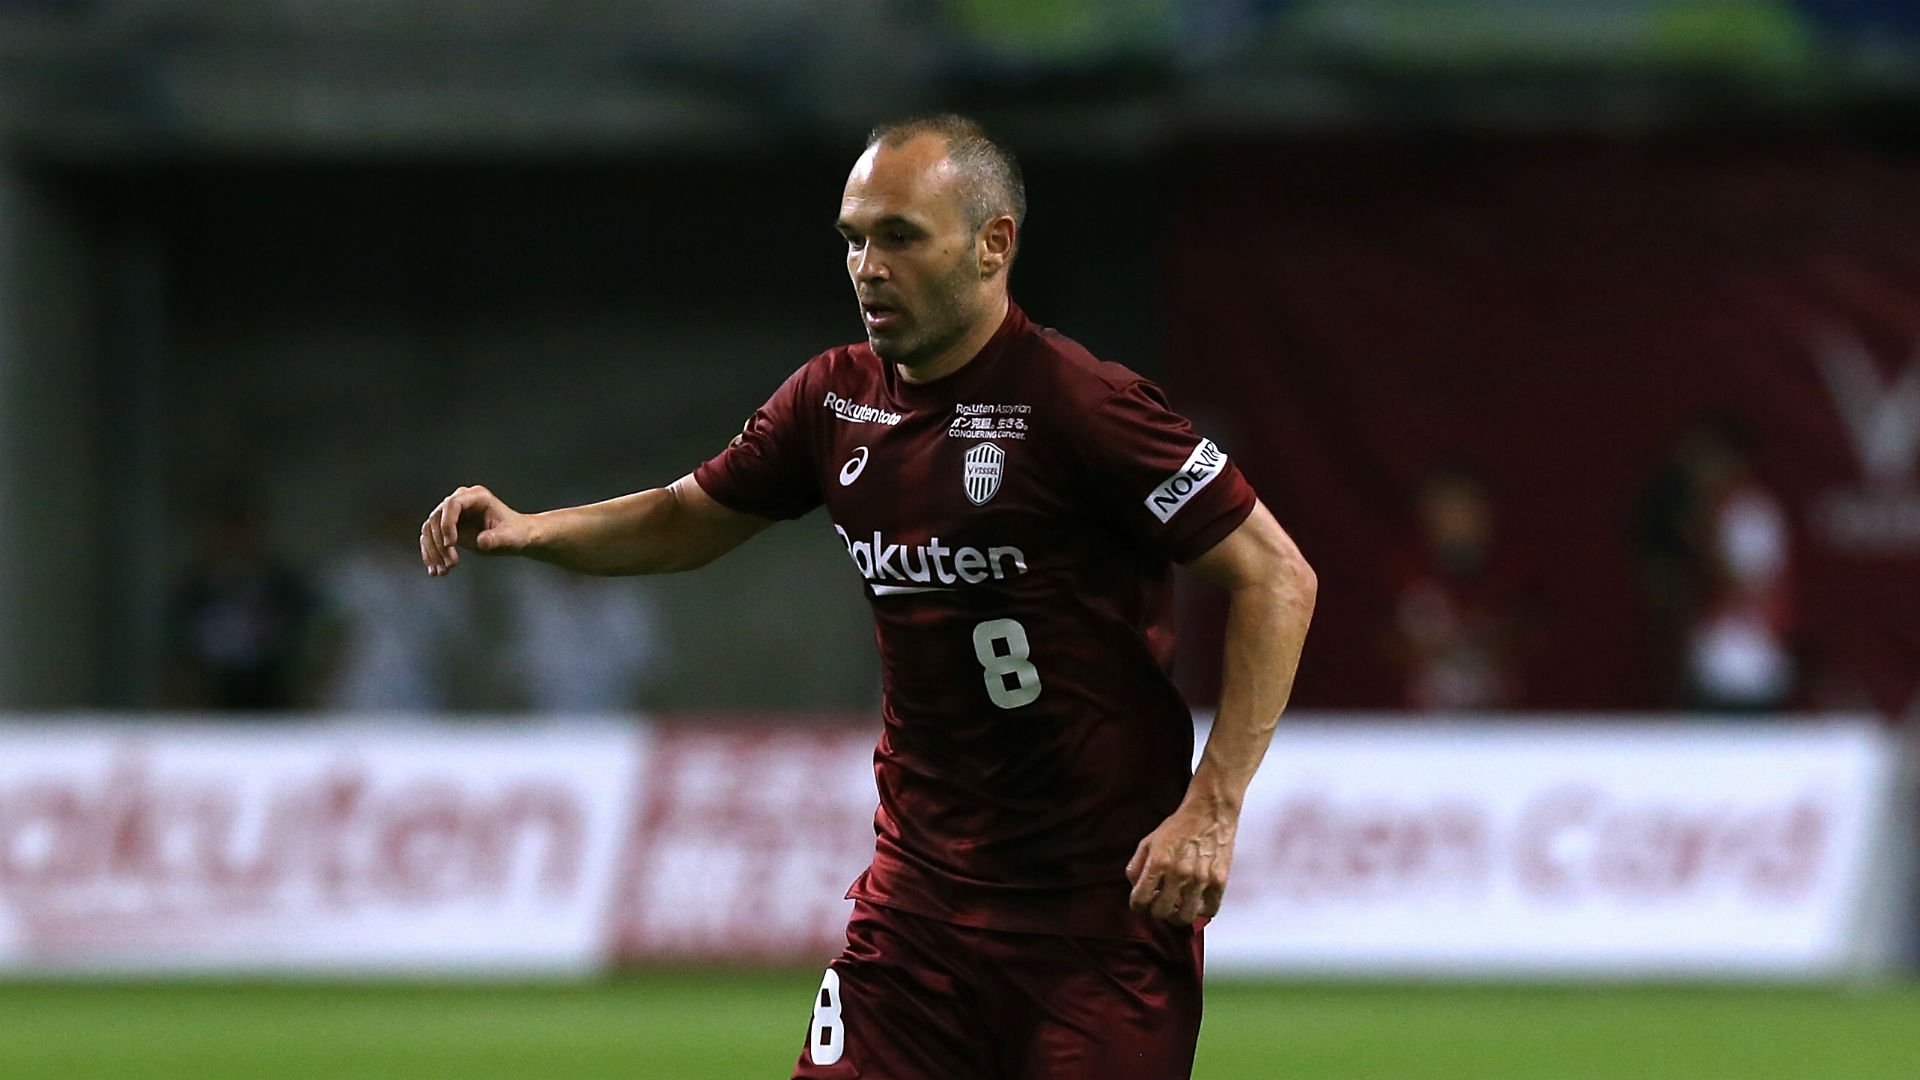 Andres Iniesta - former Barcelona player, currently playing for Kobe Vissel